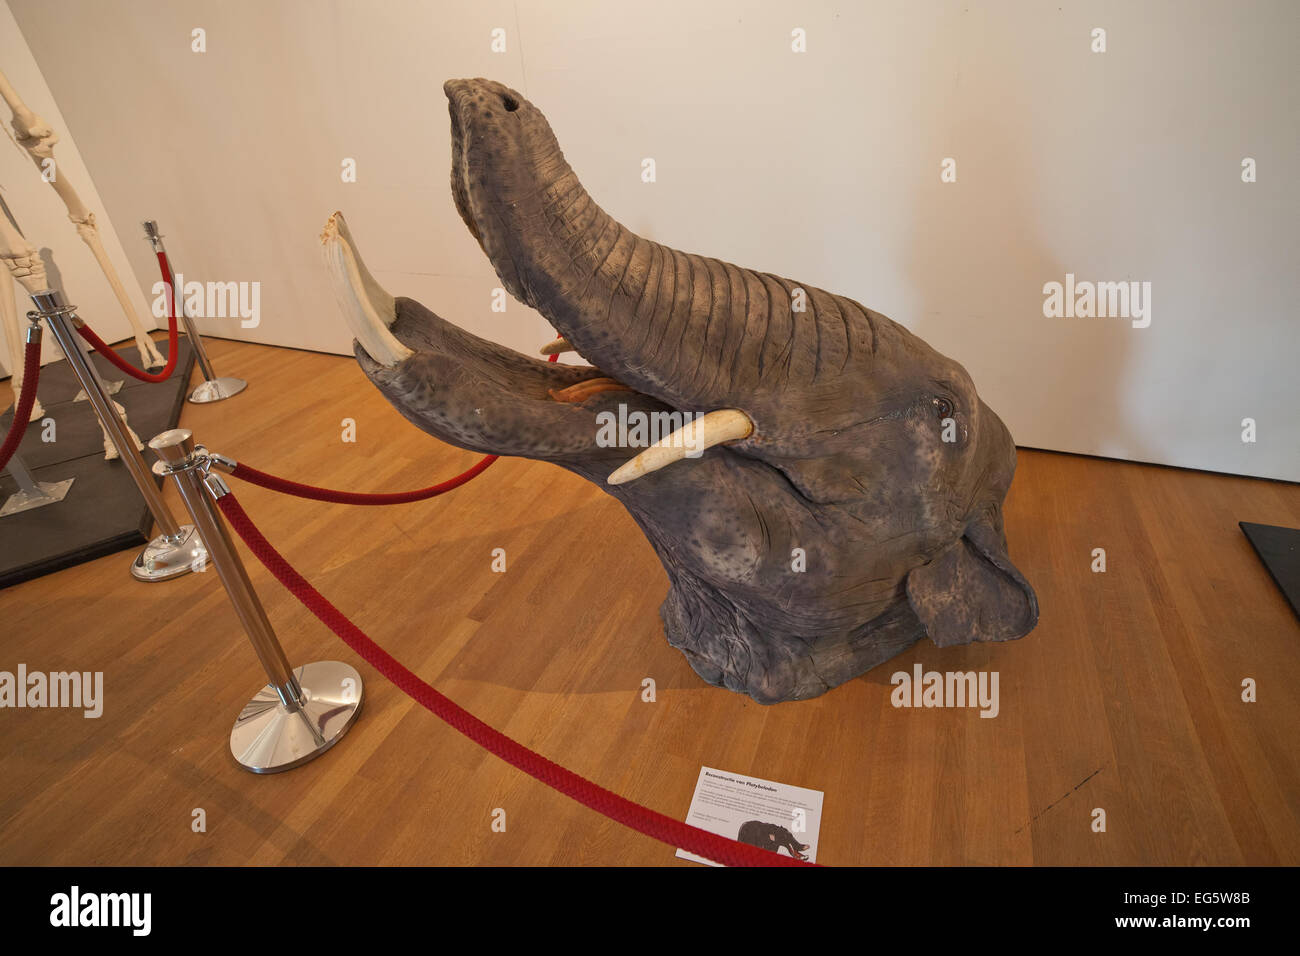 Platybelodon in the Natural History Museum Rotterdam, Holland, Netherlands. - Stock Image